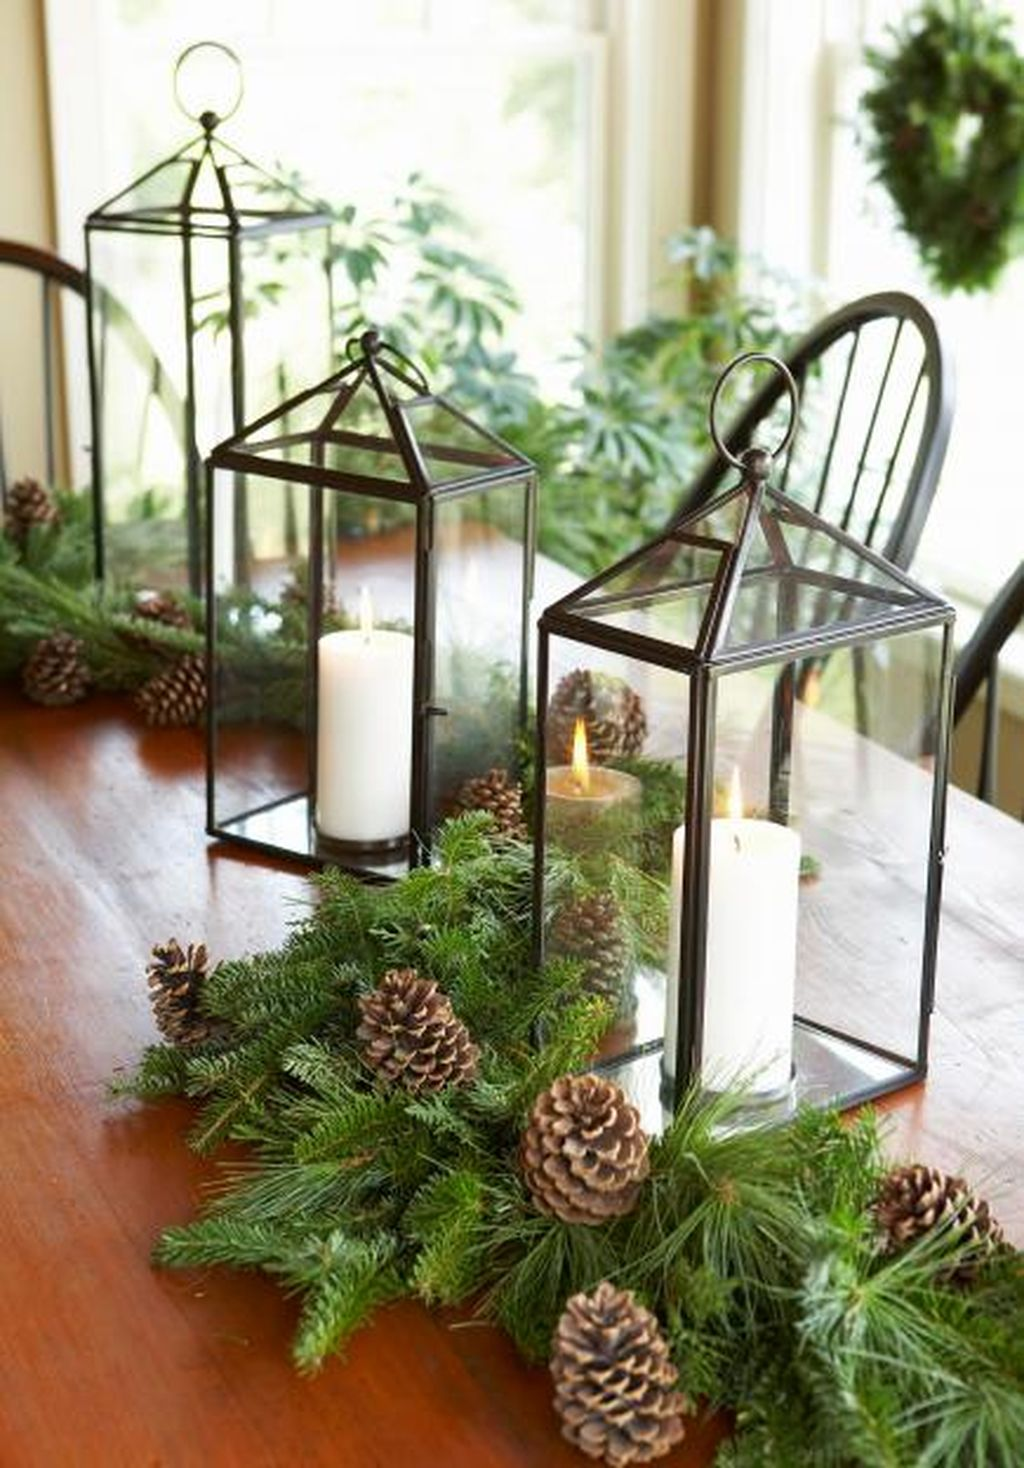 Inspiring Modern Rustic Christmas Centerpieces Ideas With Candles 93